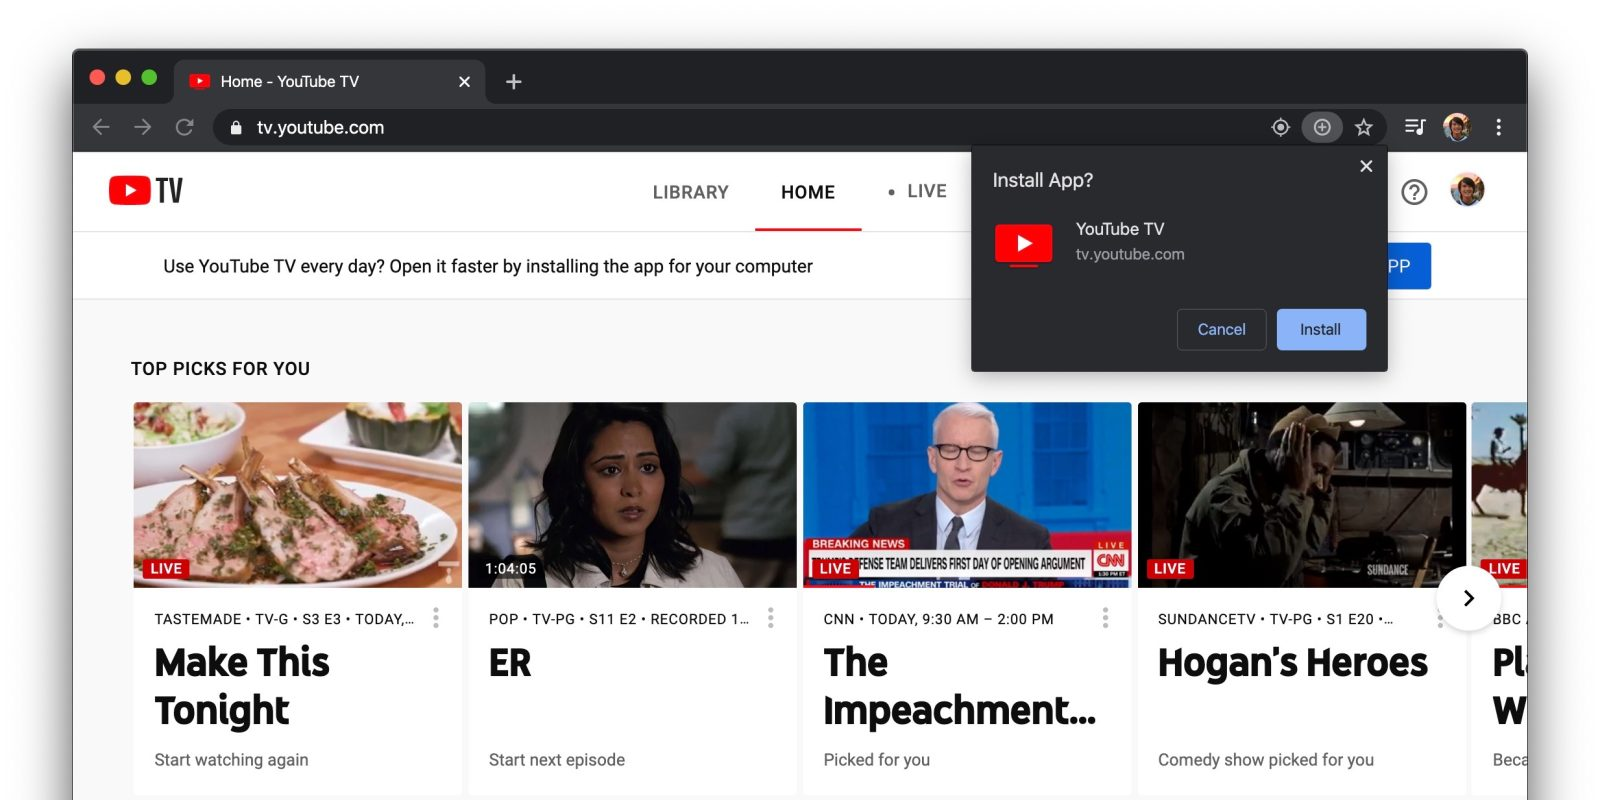 YouTube TV prompting frequent watchers to install Progressive Web App